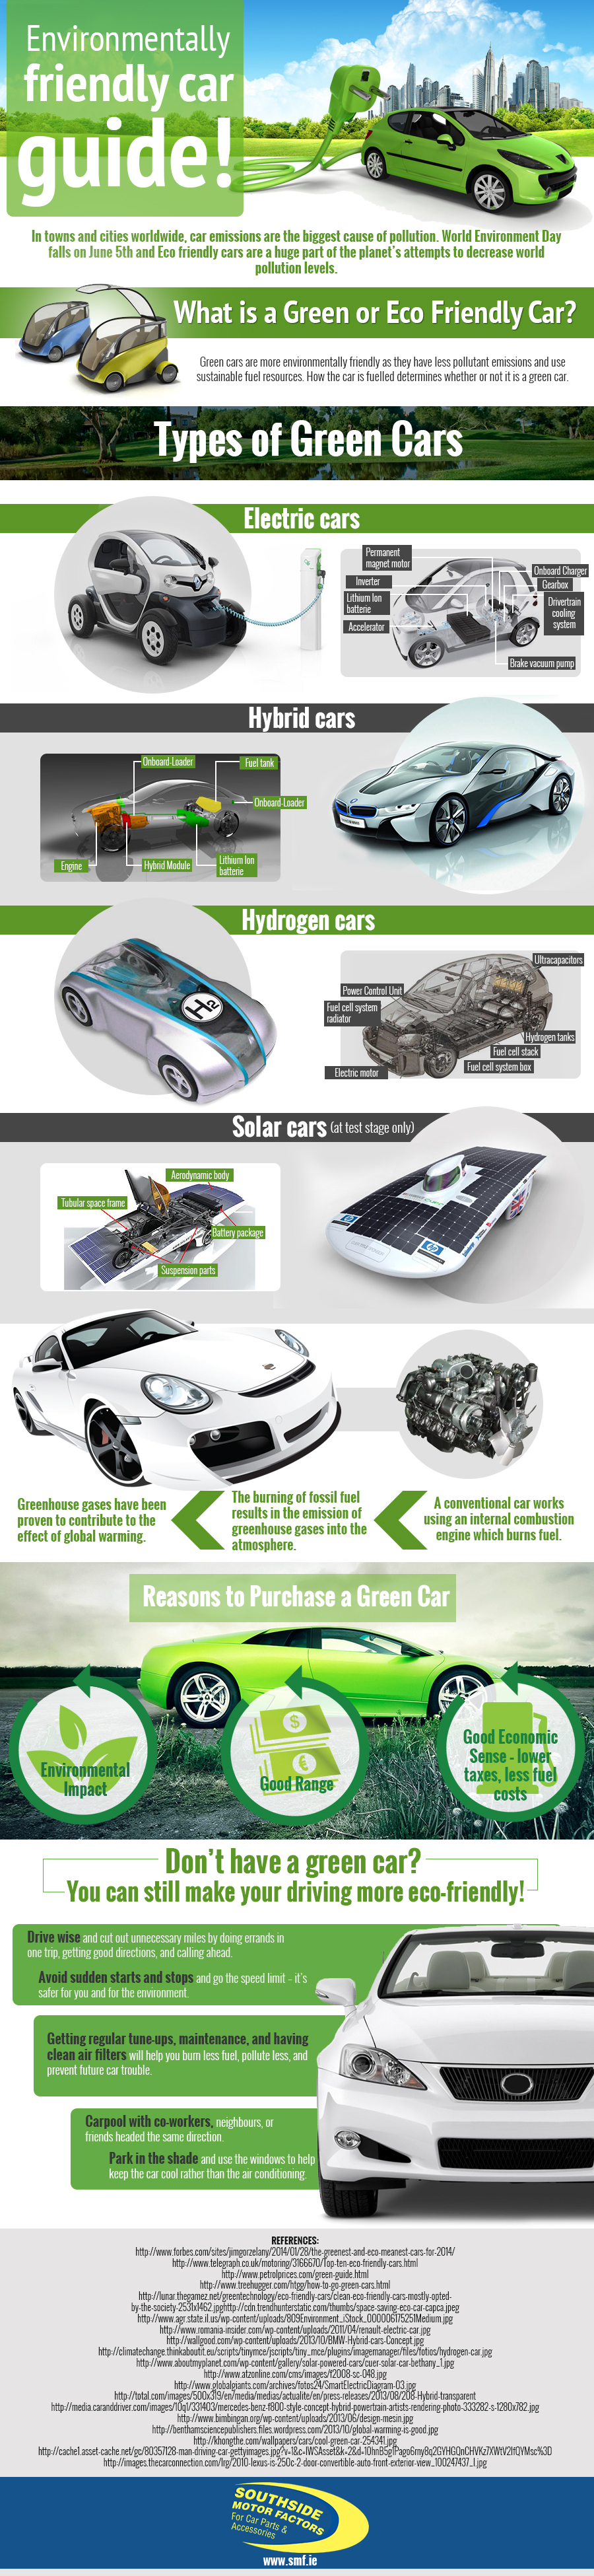 infographic_car_guide